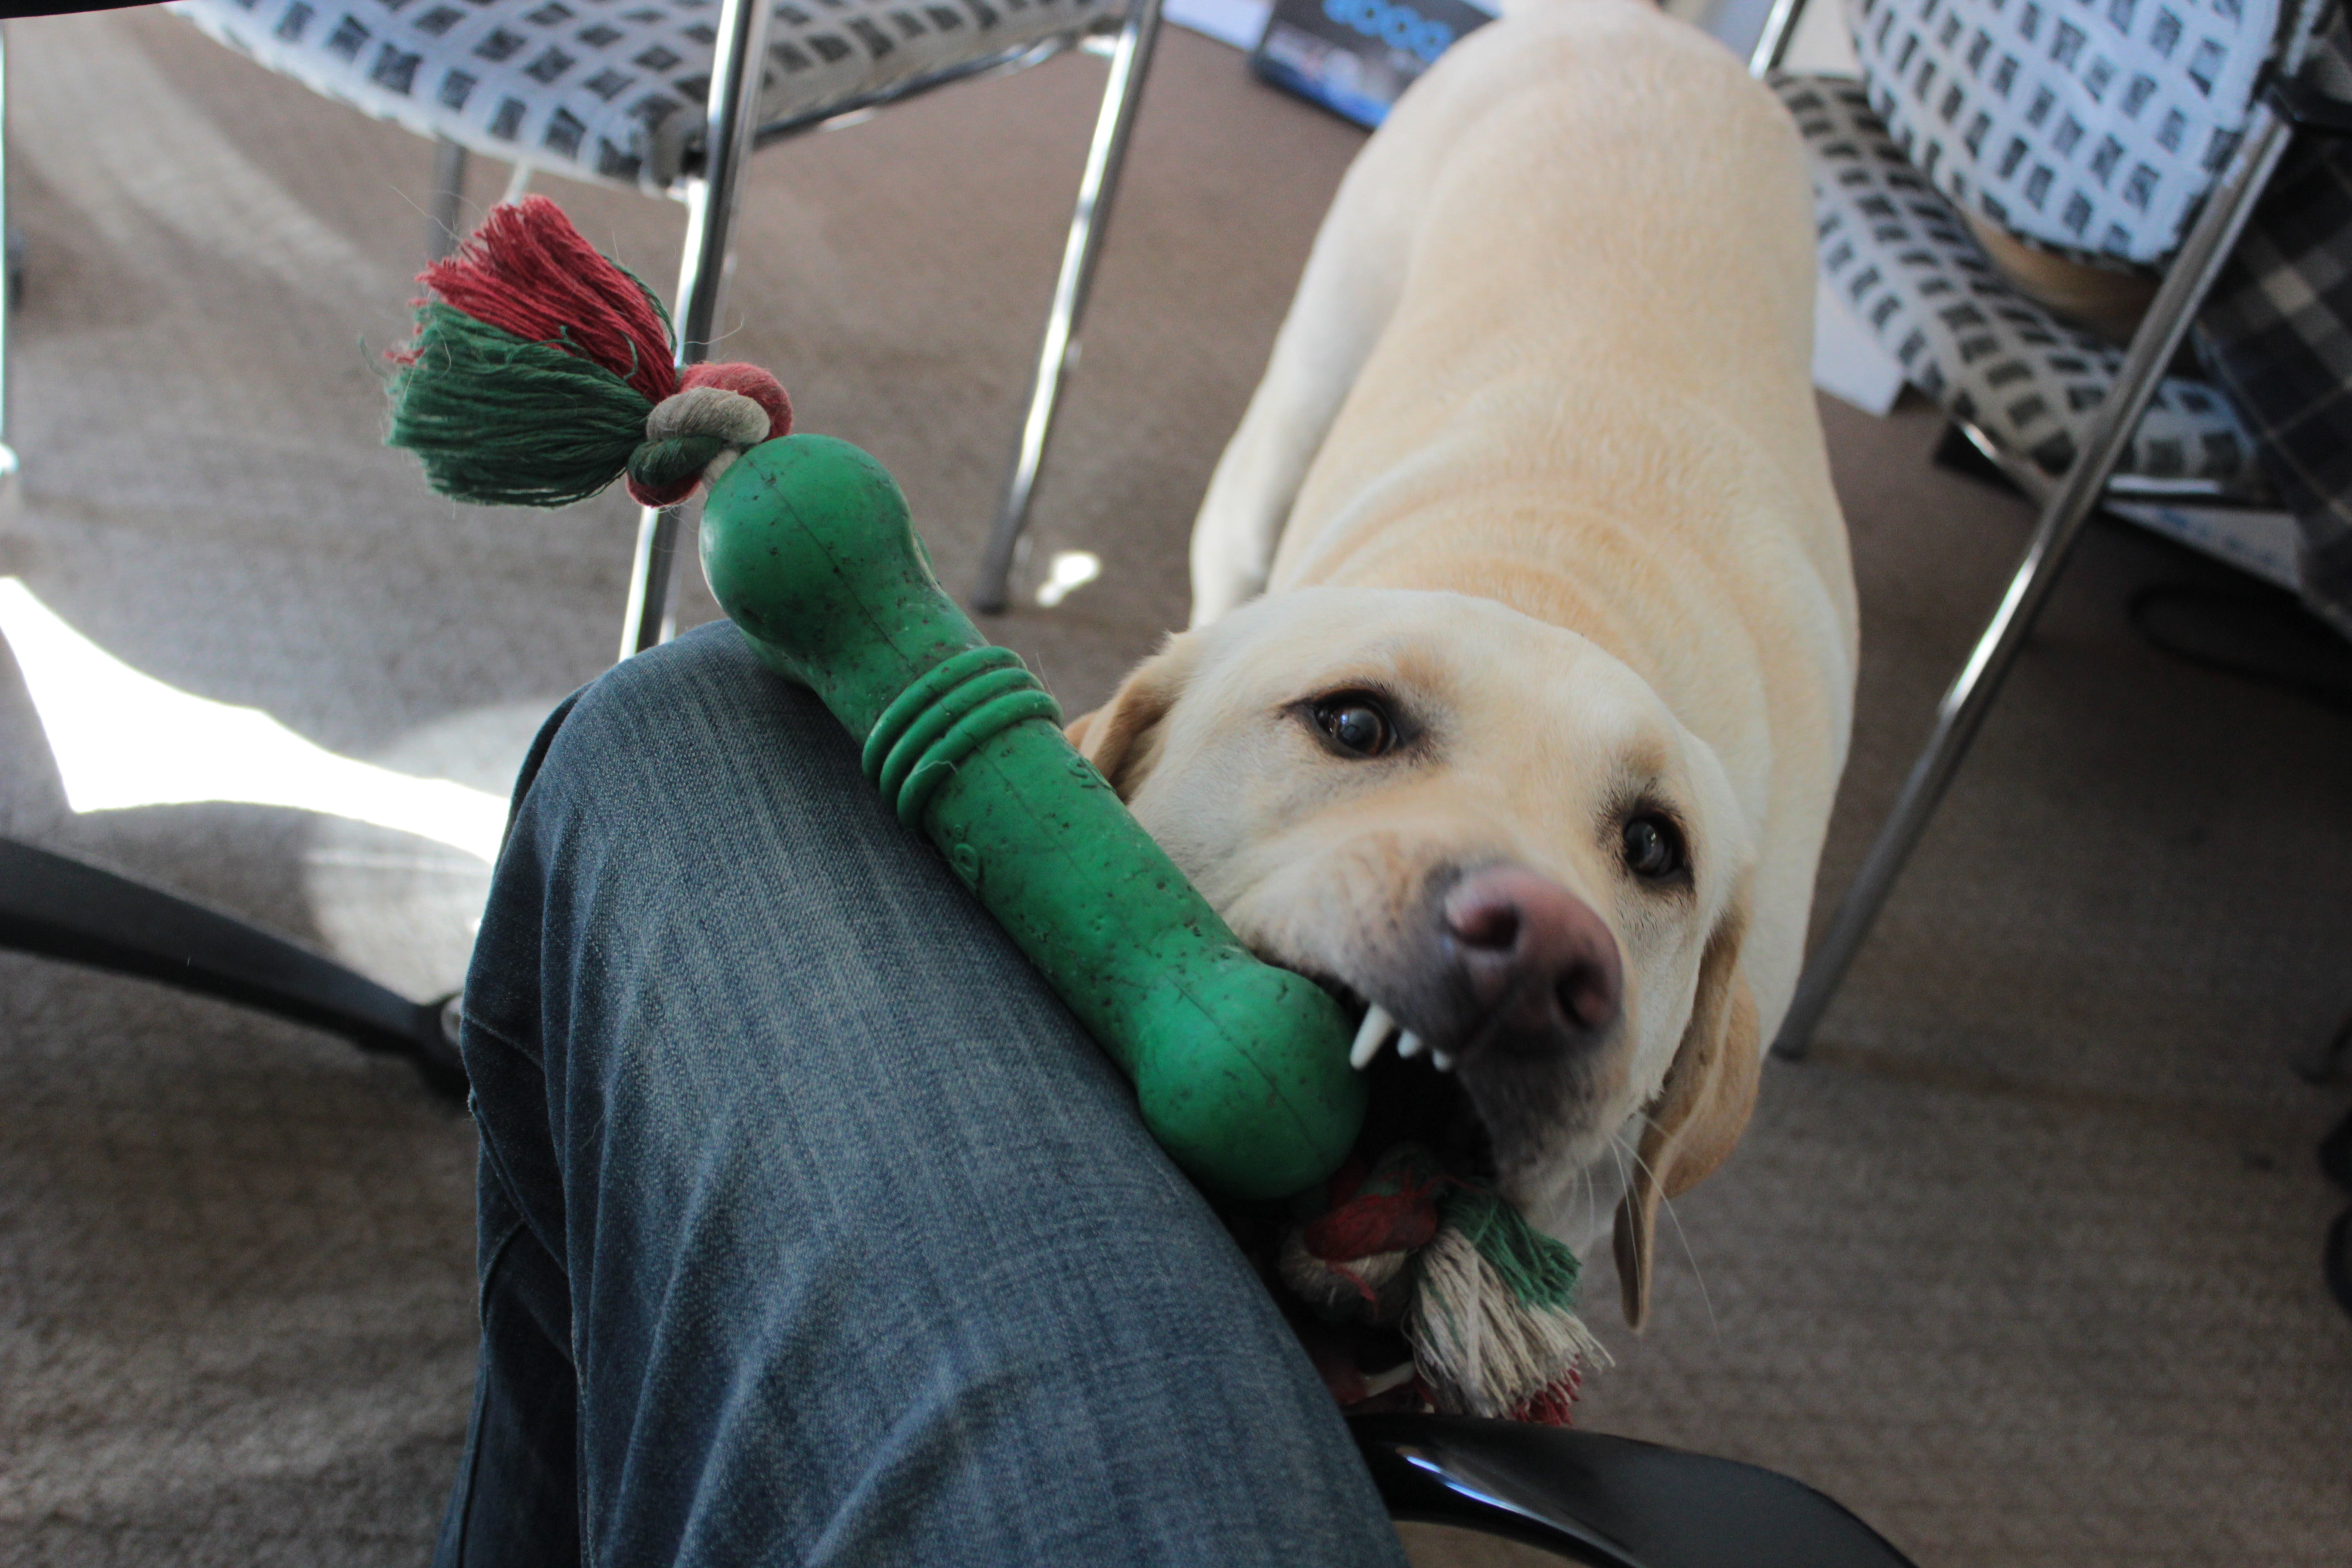 dog chewing on dog toy